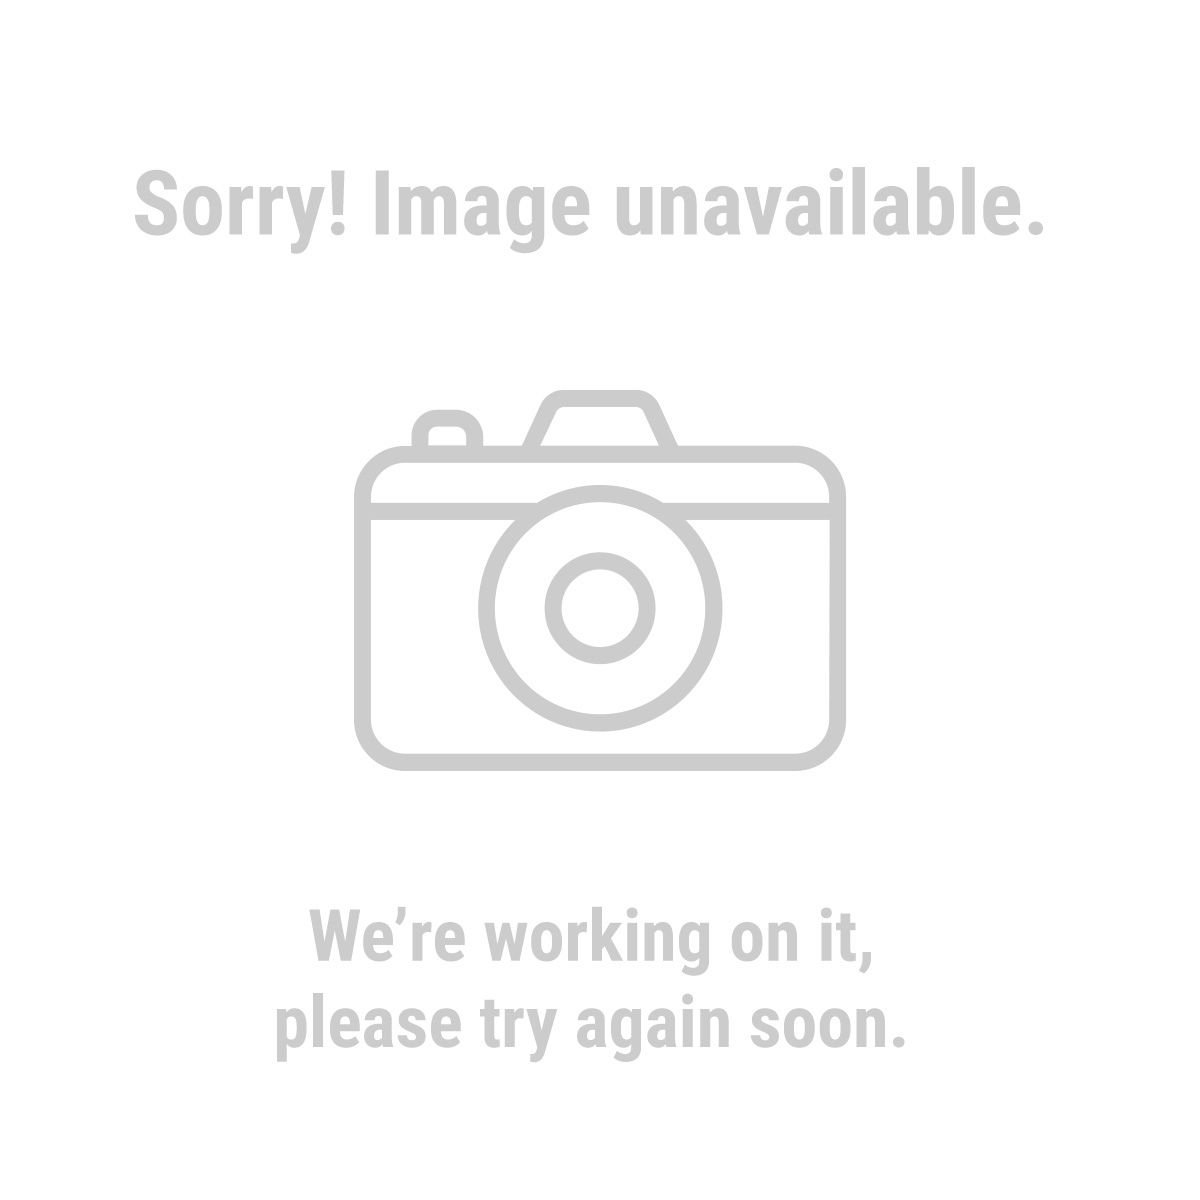 Chicago Electric Welding 98233 165 Amp-DC, 240 Volt, Inverter TIG/Stick Welder with High Frequency Start